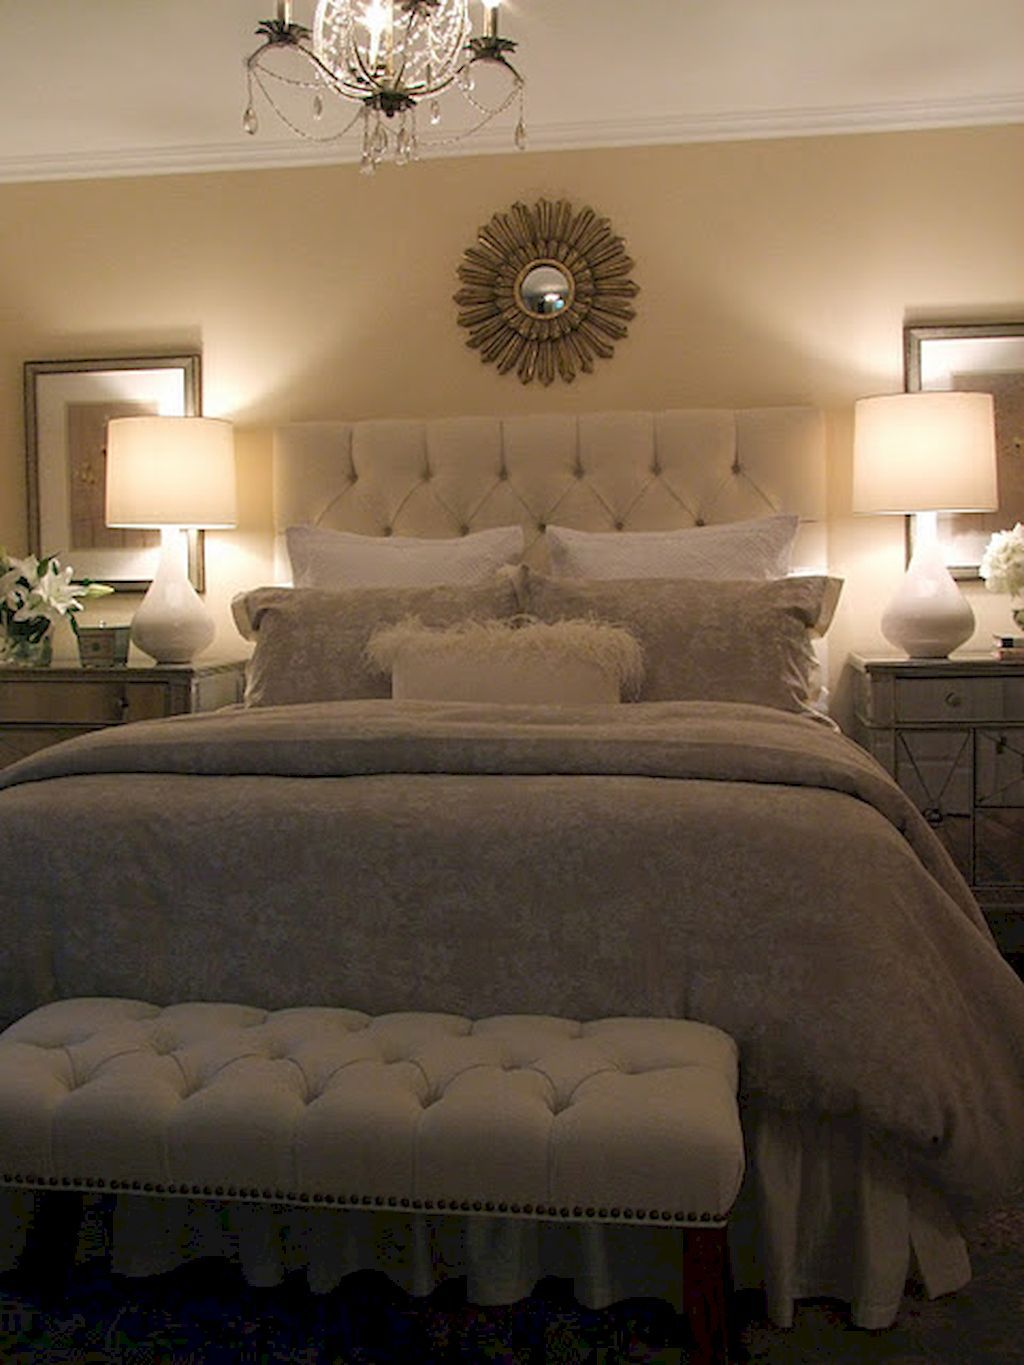 Cool 60 Beautiful Master Bedroom Decorating Ideas Https Homespecially